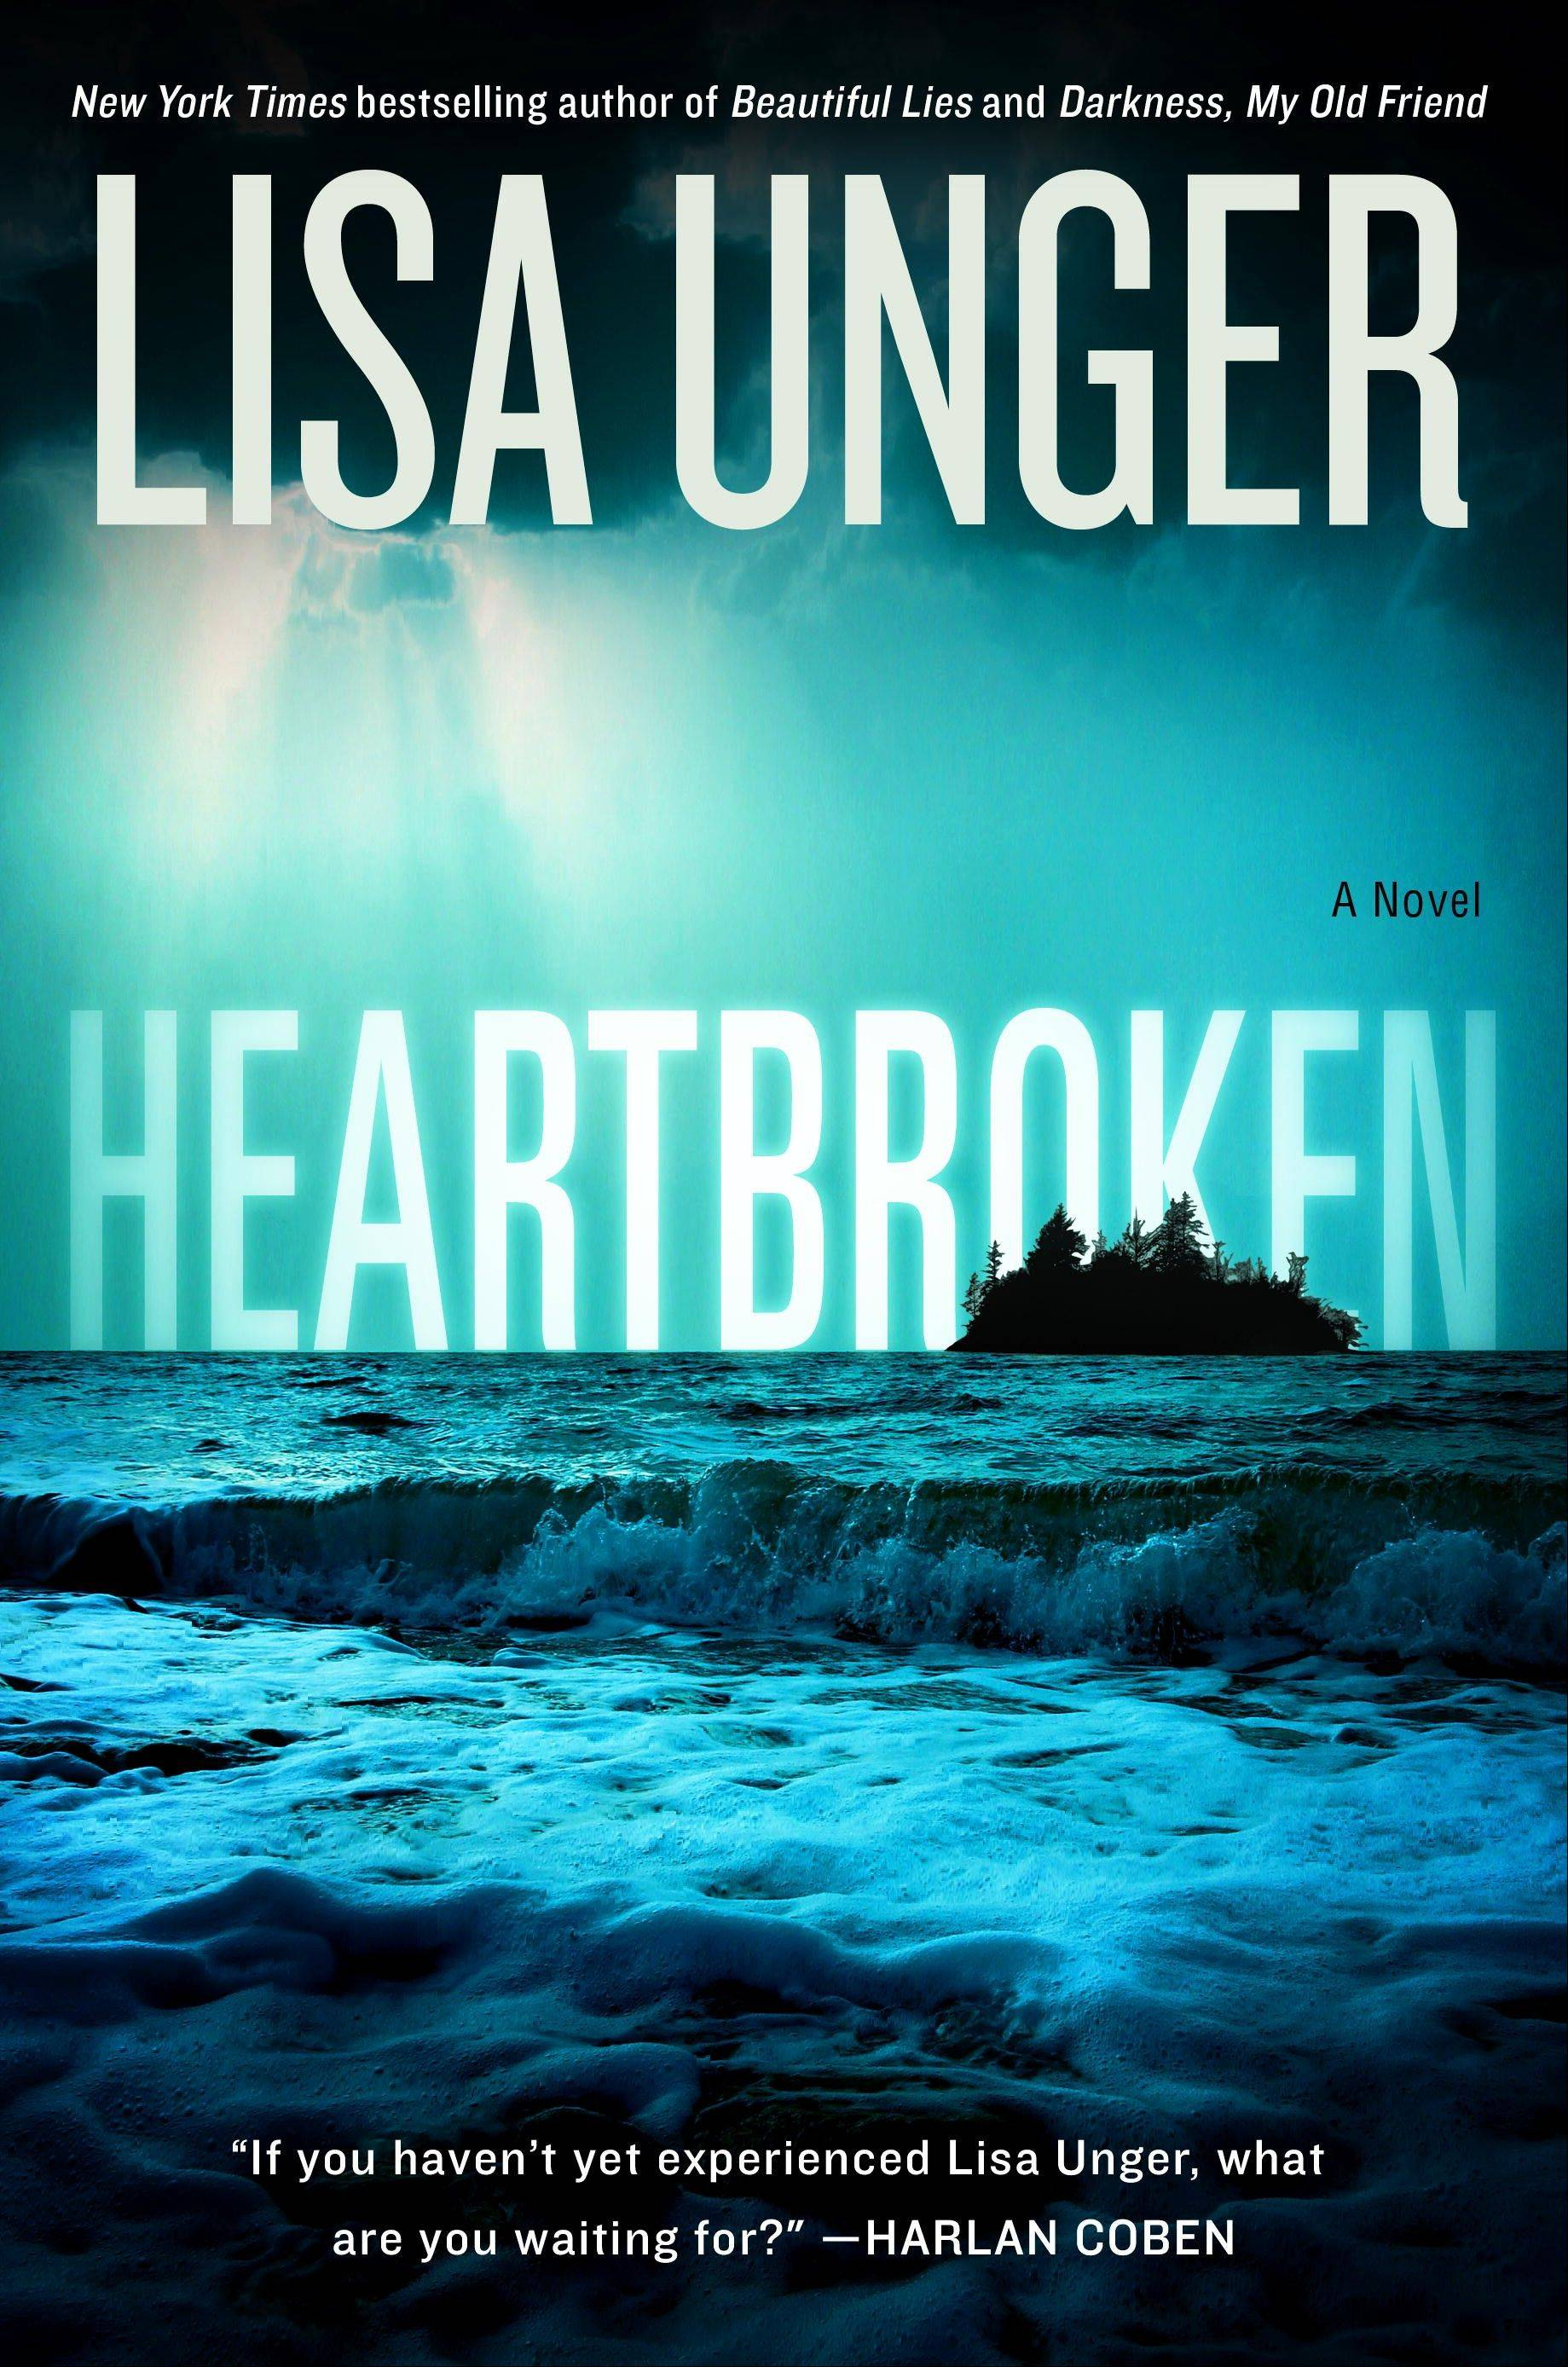 �Heartbroken� by Lisa Unger